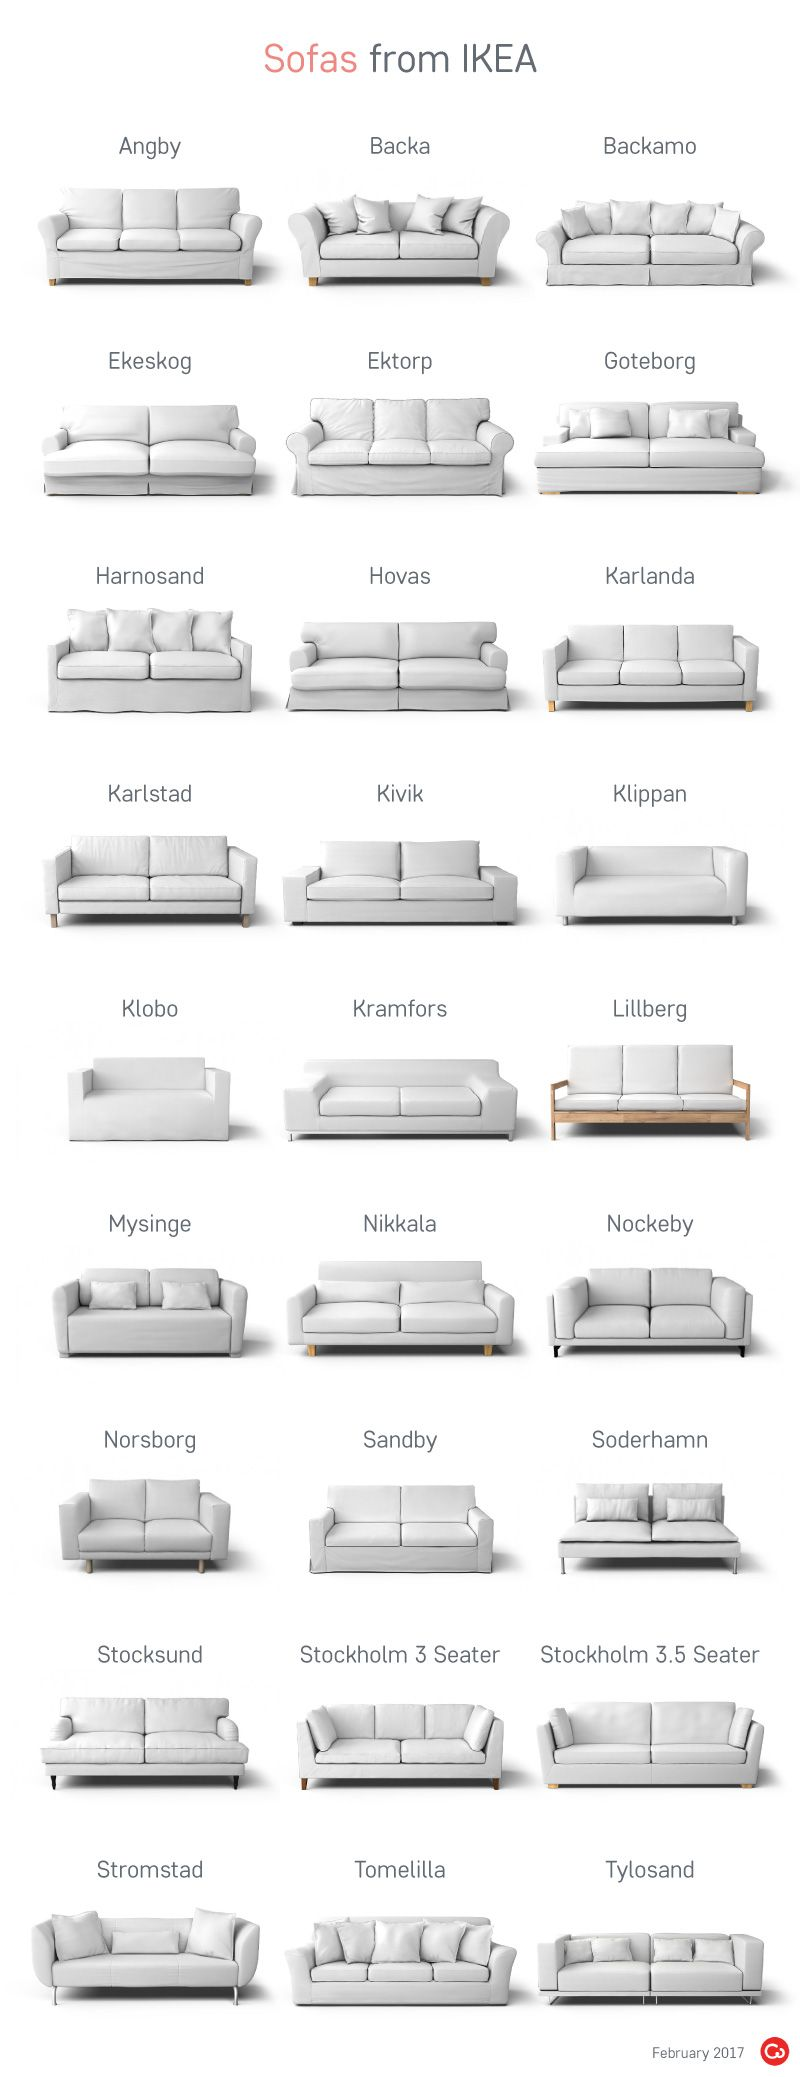 Replacement Ikea Sofa Covers For Discontinued Ikea Couch Models Housses De Canapes Ikea Canape Ikea Housse Canape